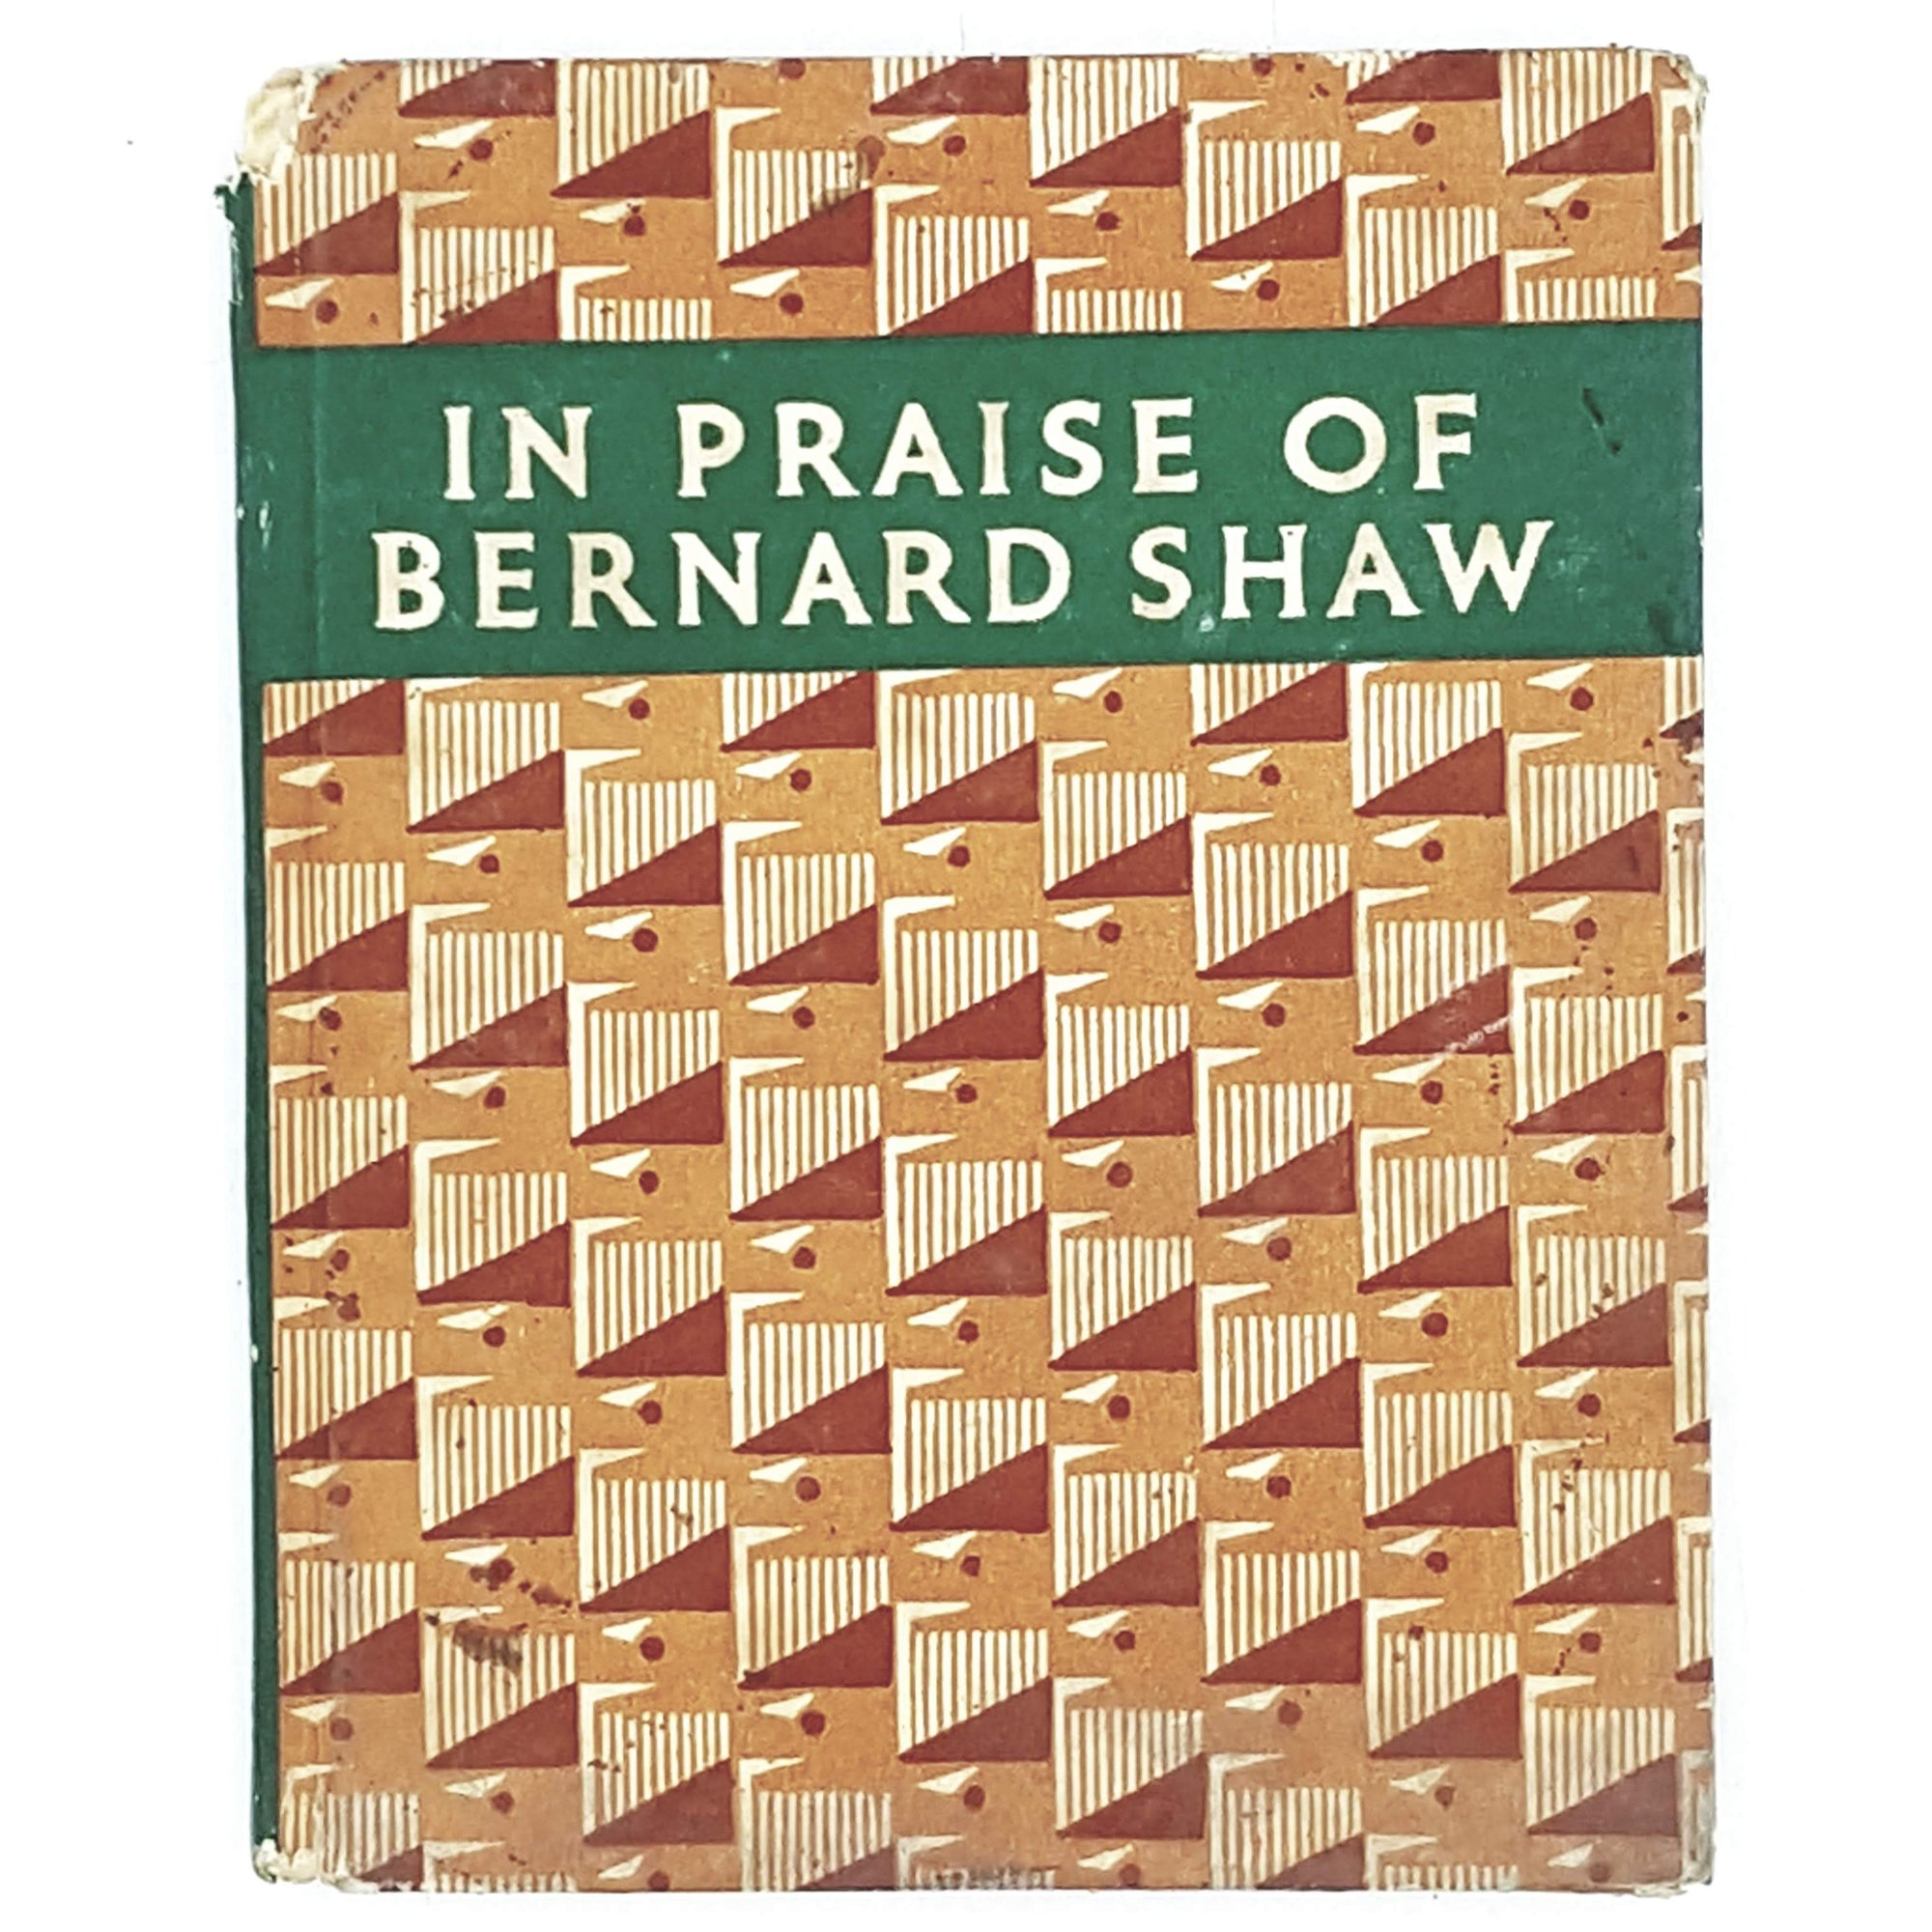 In Praise of Bernard Shaw by Allan M. Laing 1949